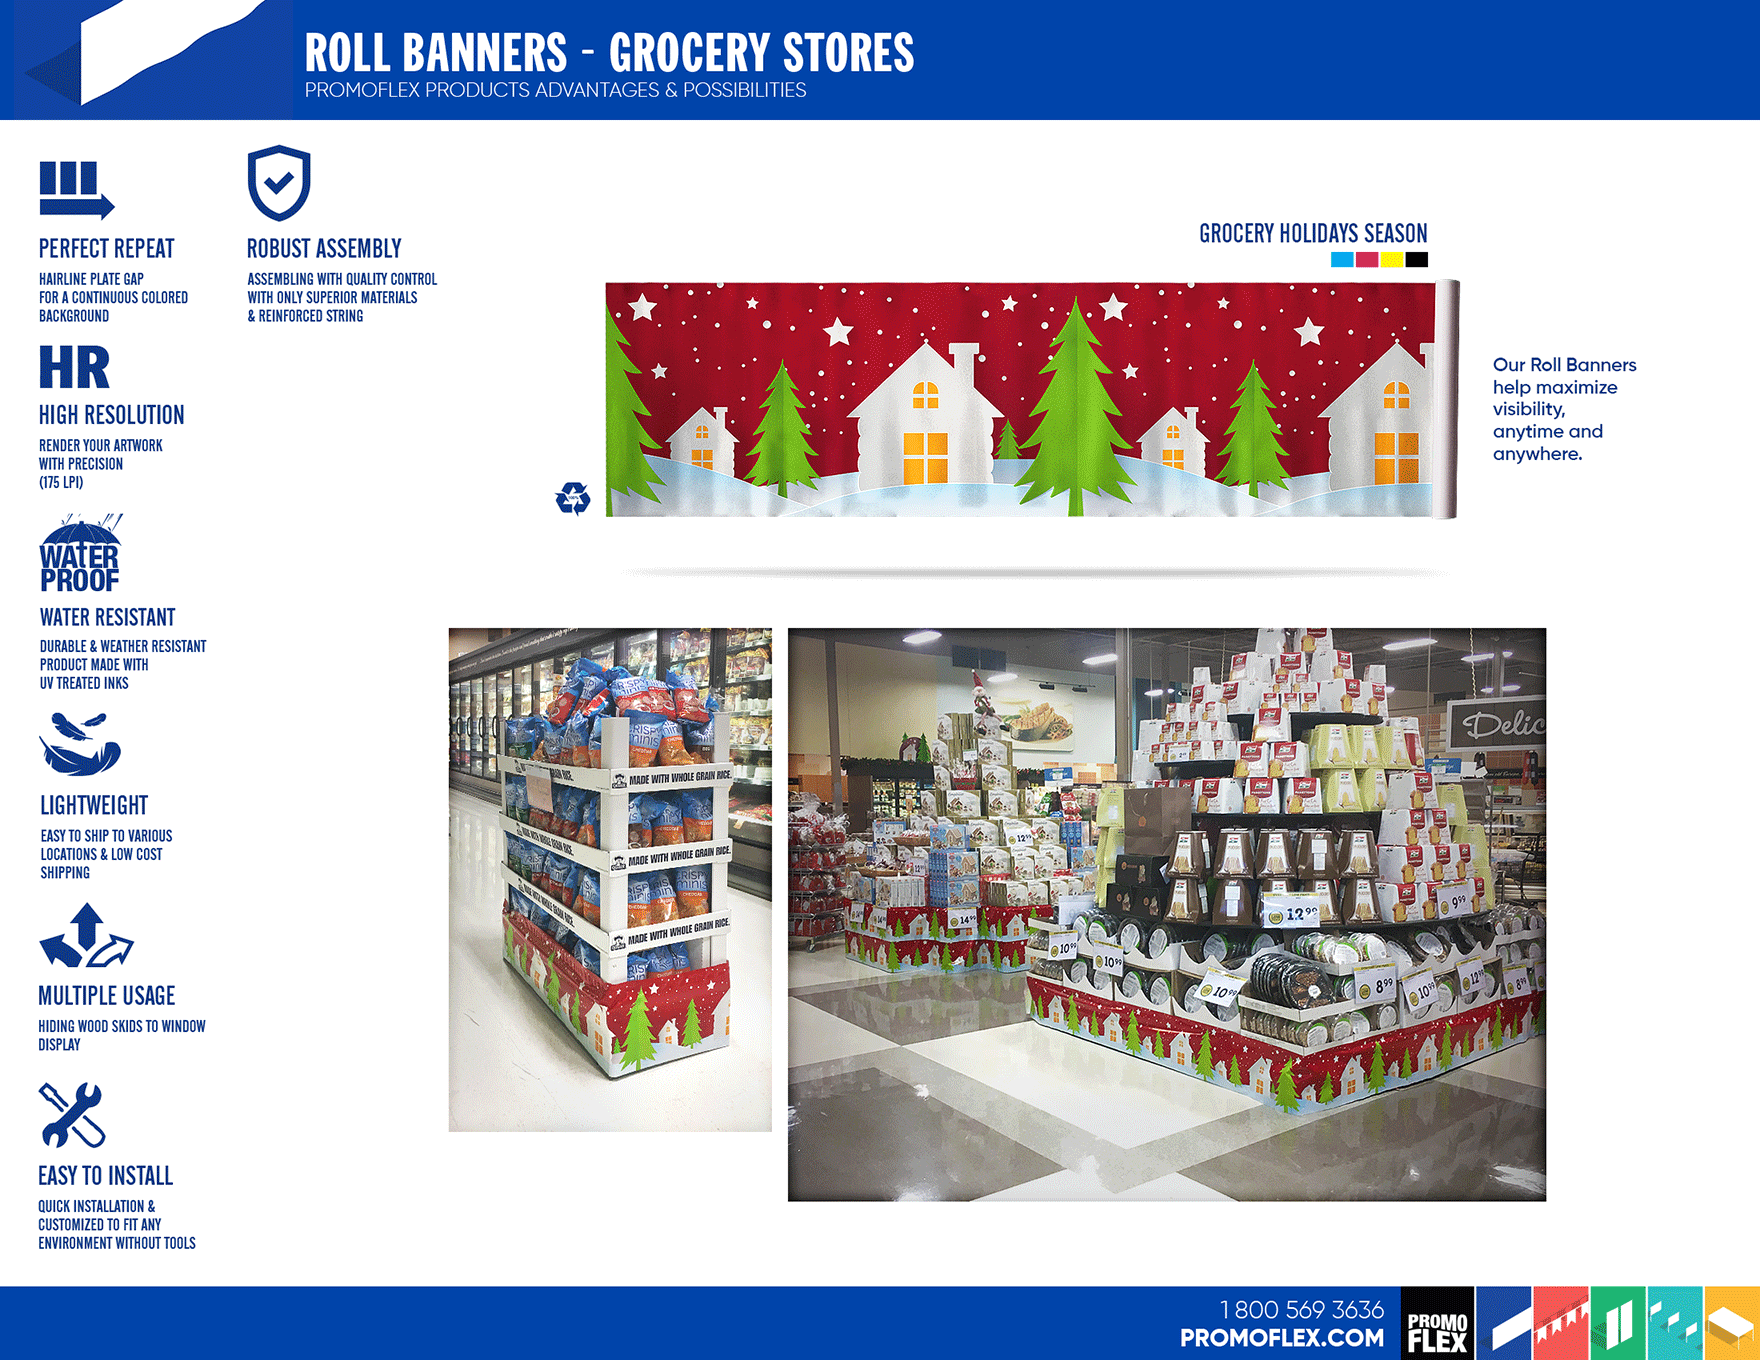 roll-banners-grocery-stores-en-11.png (539 KB)